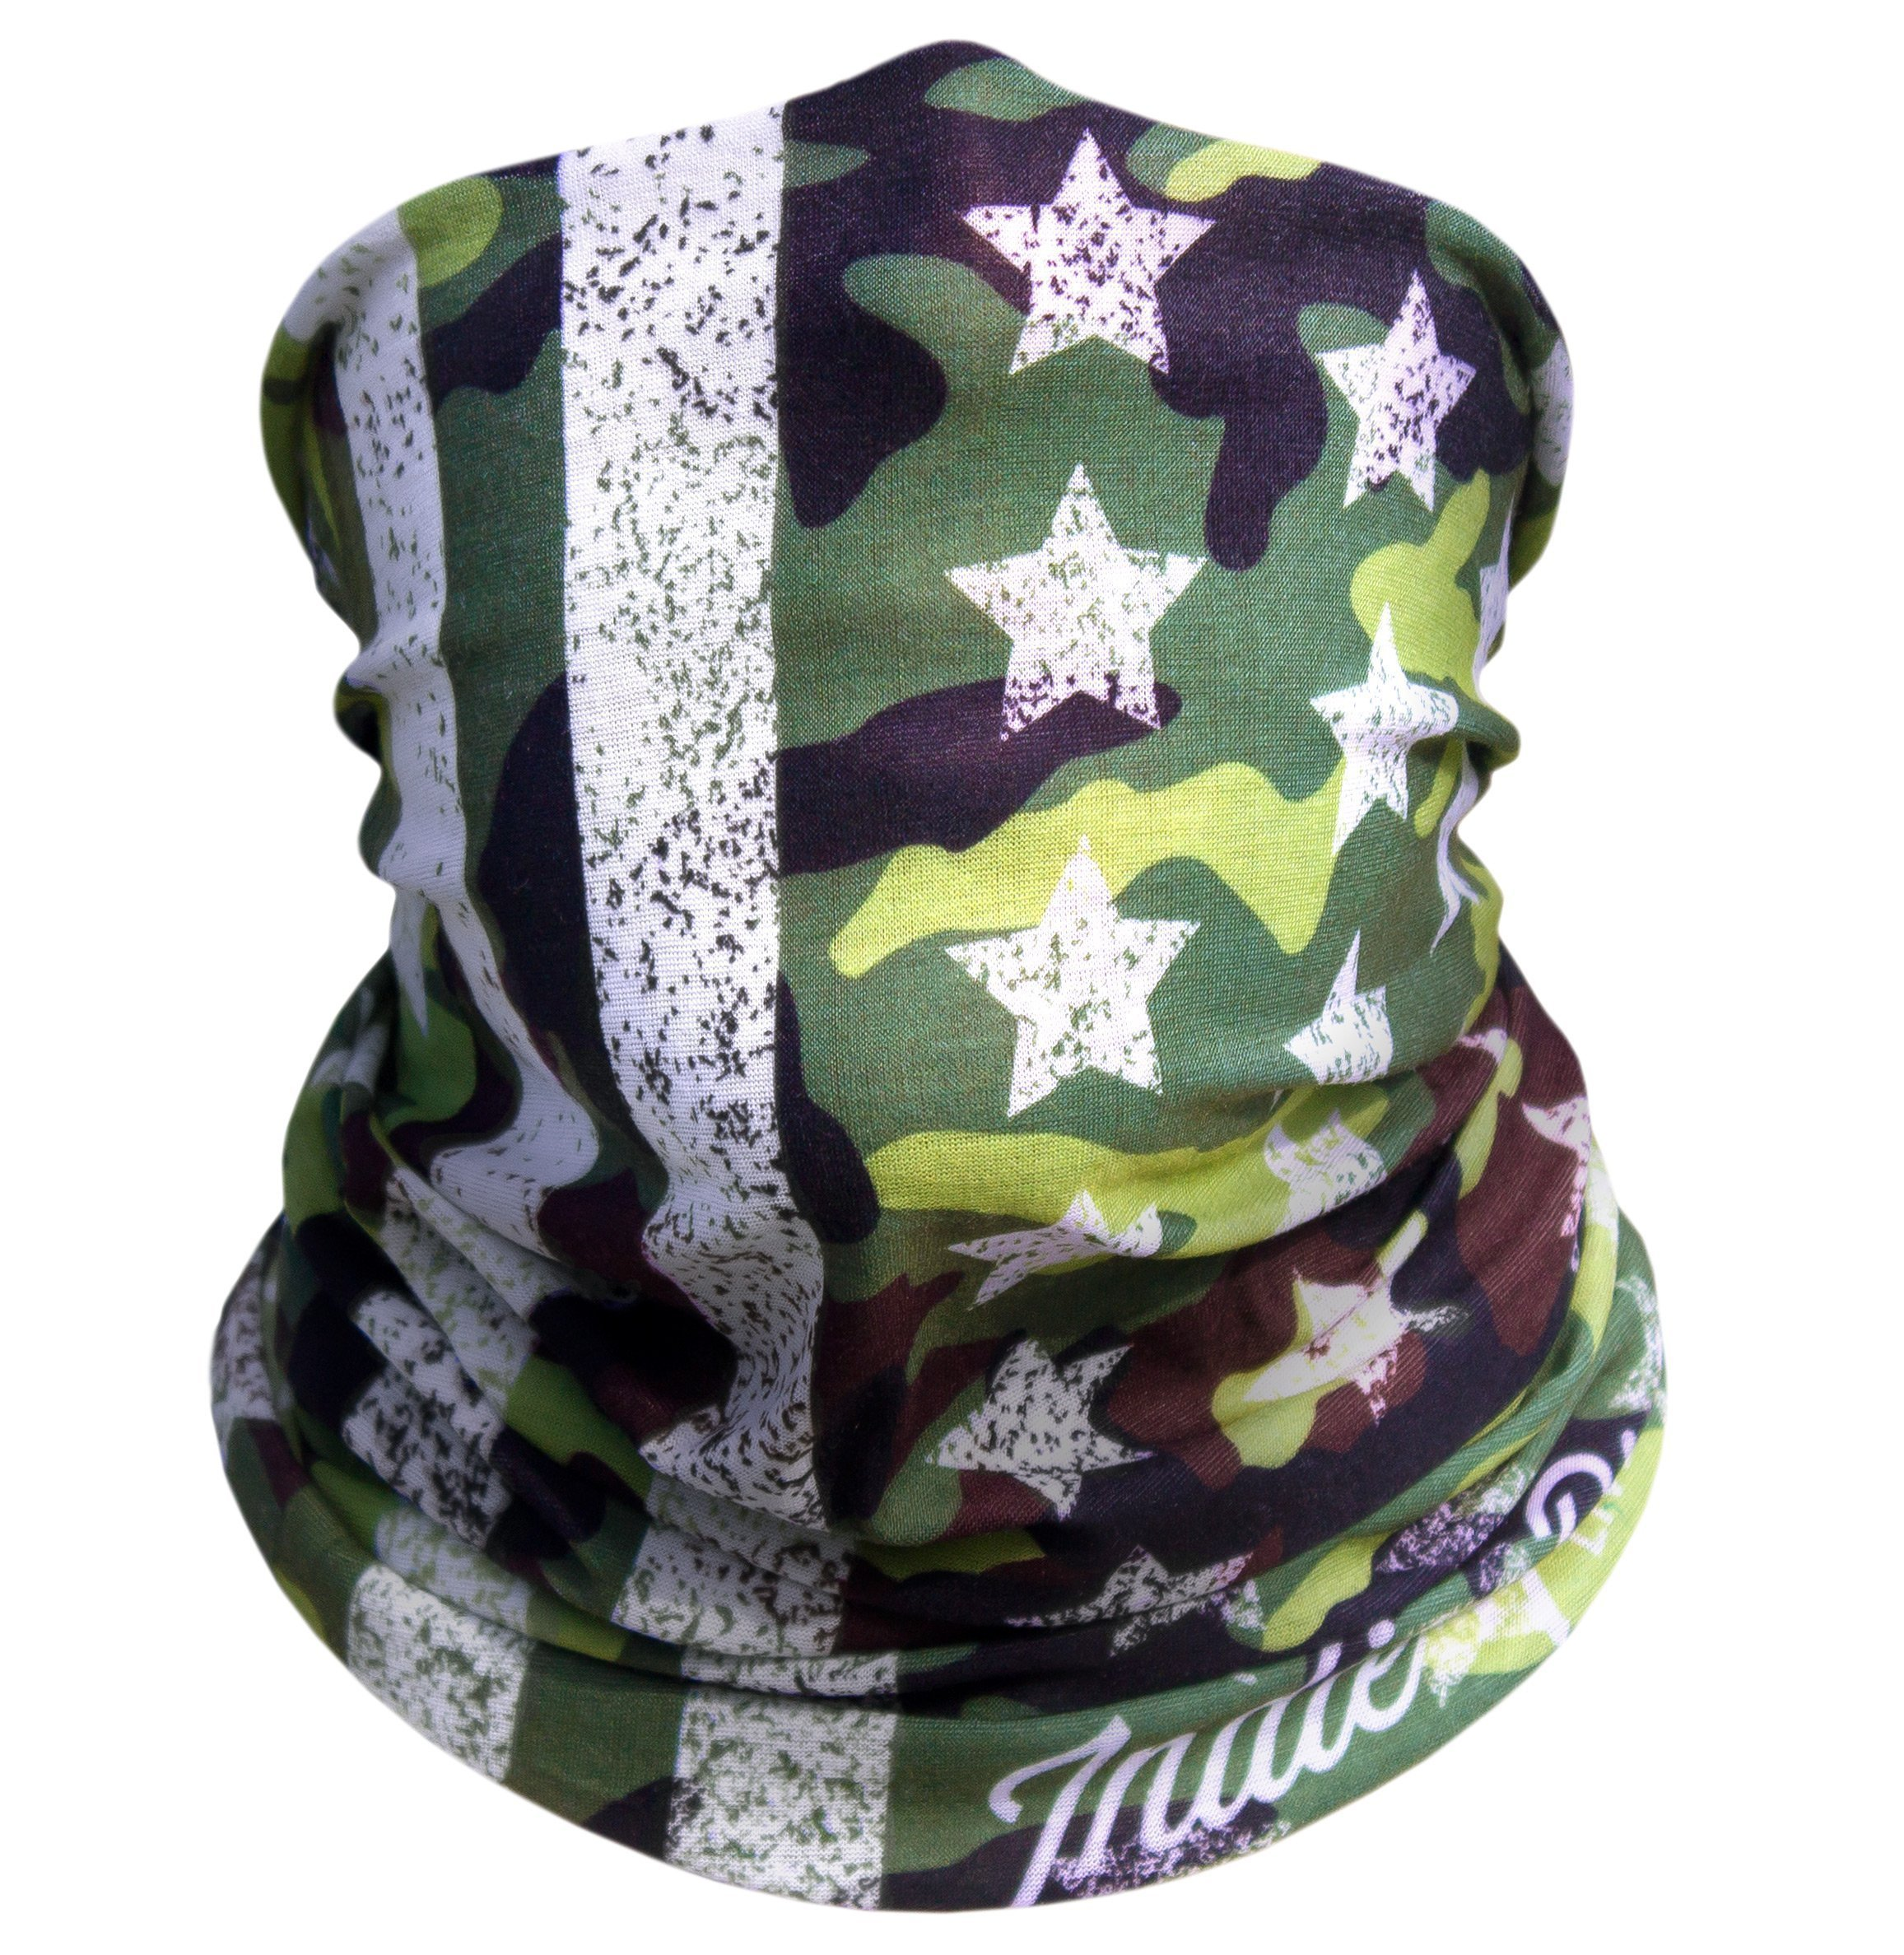 ac11fc75df6 Camo American Flag Outdoor Face Mask By IndieRidge - Microfiber Polyester  Multifunctional Seamless Headwear product image